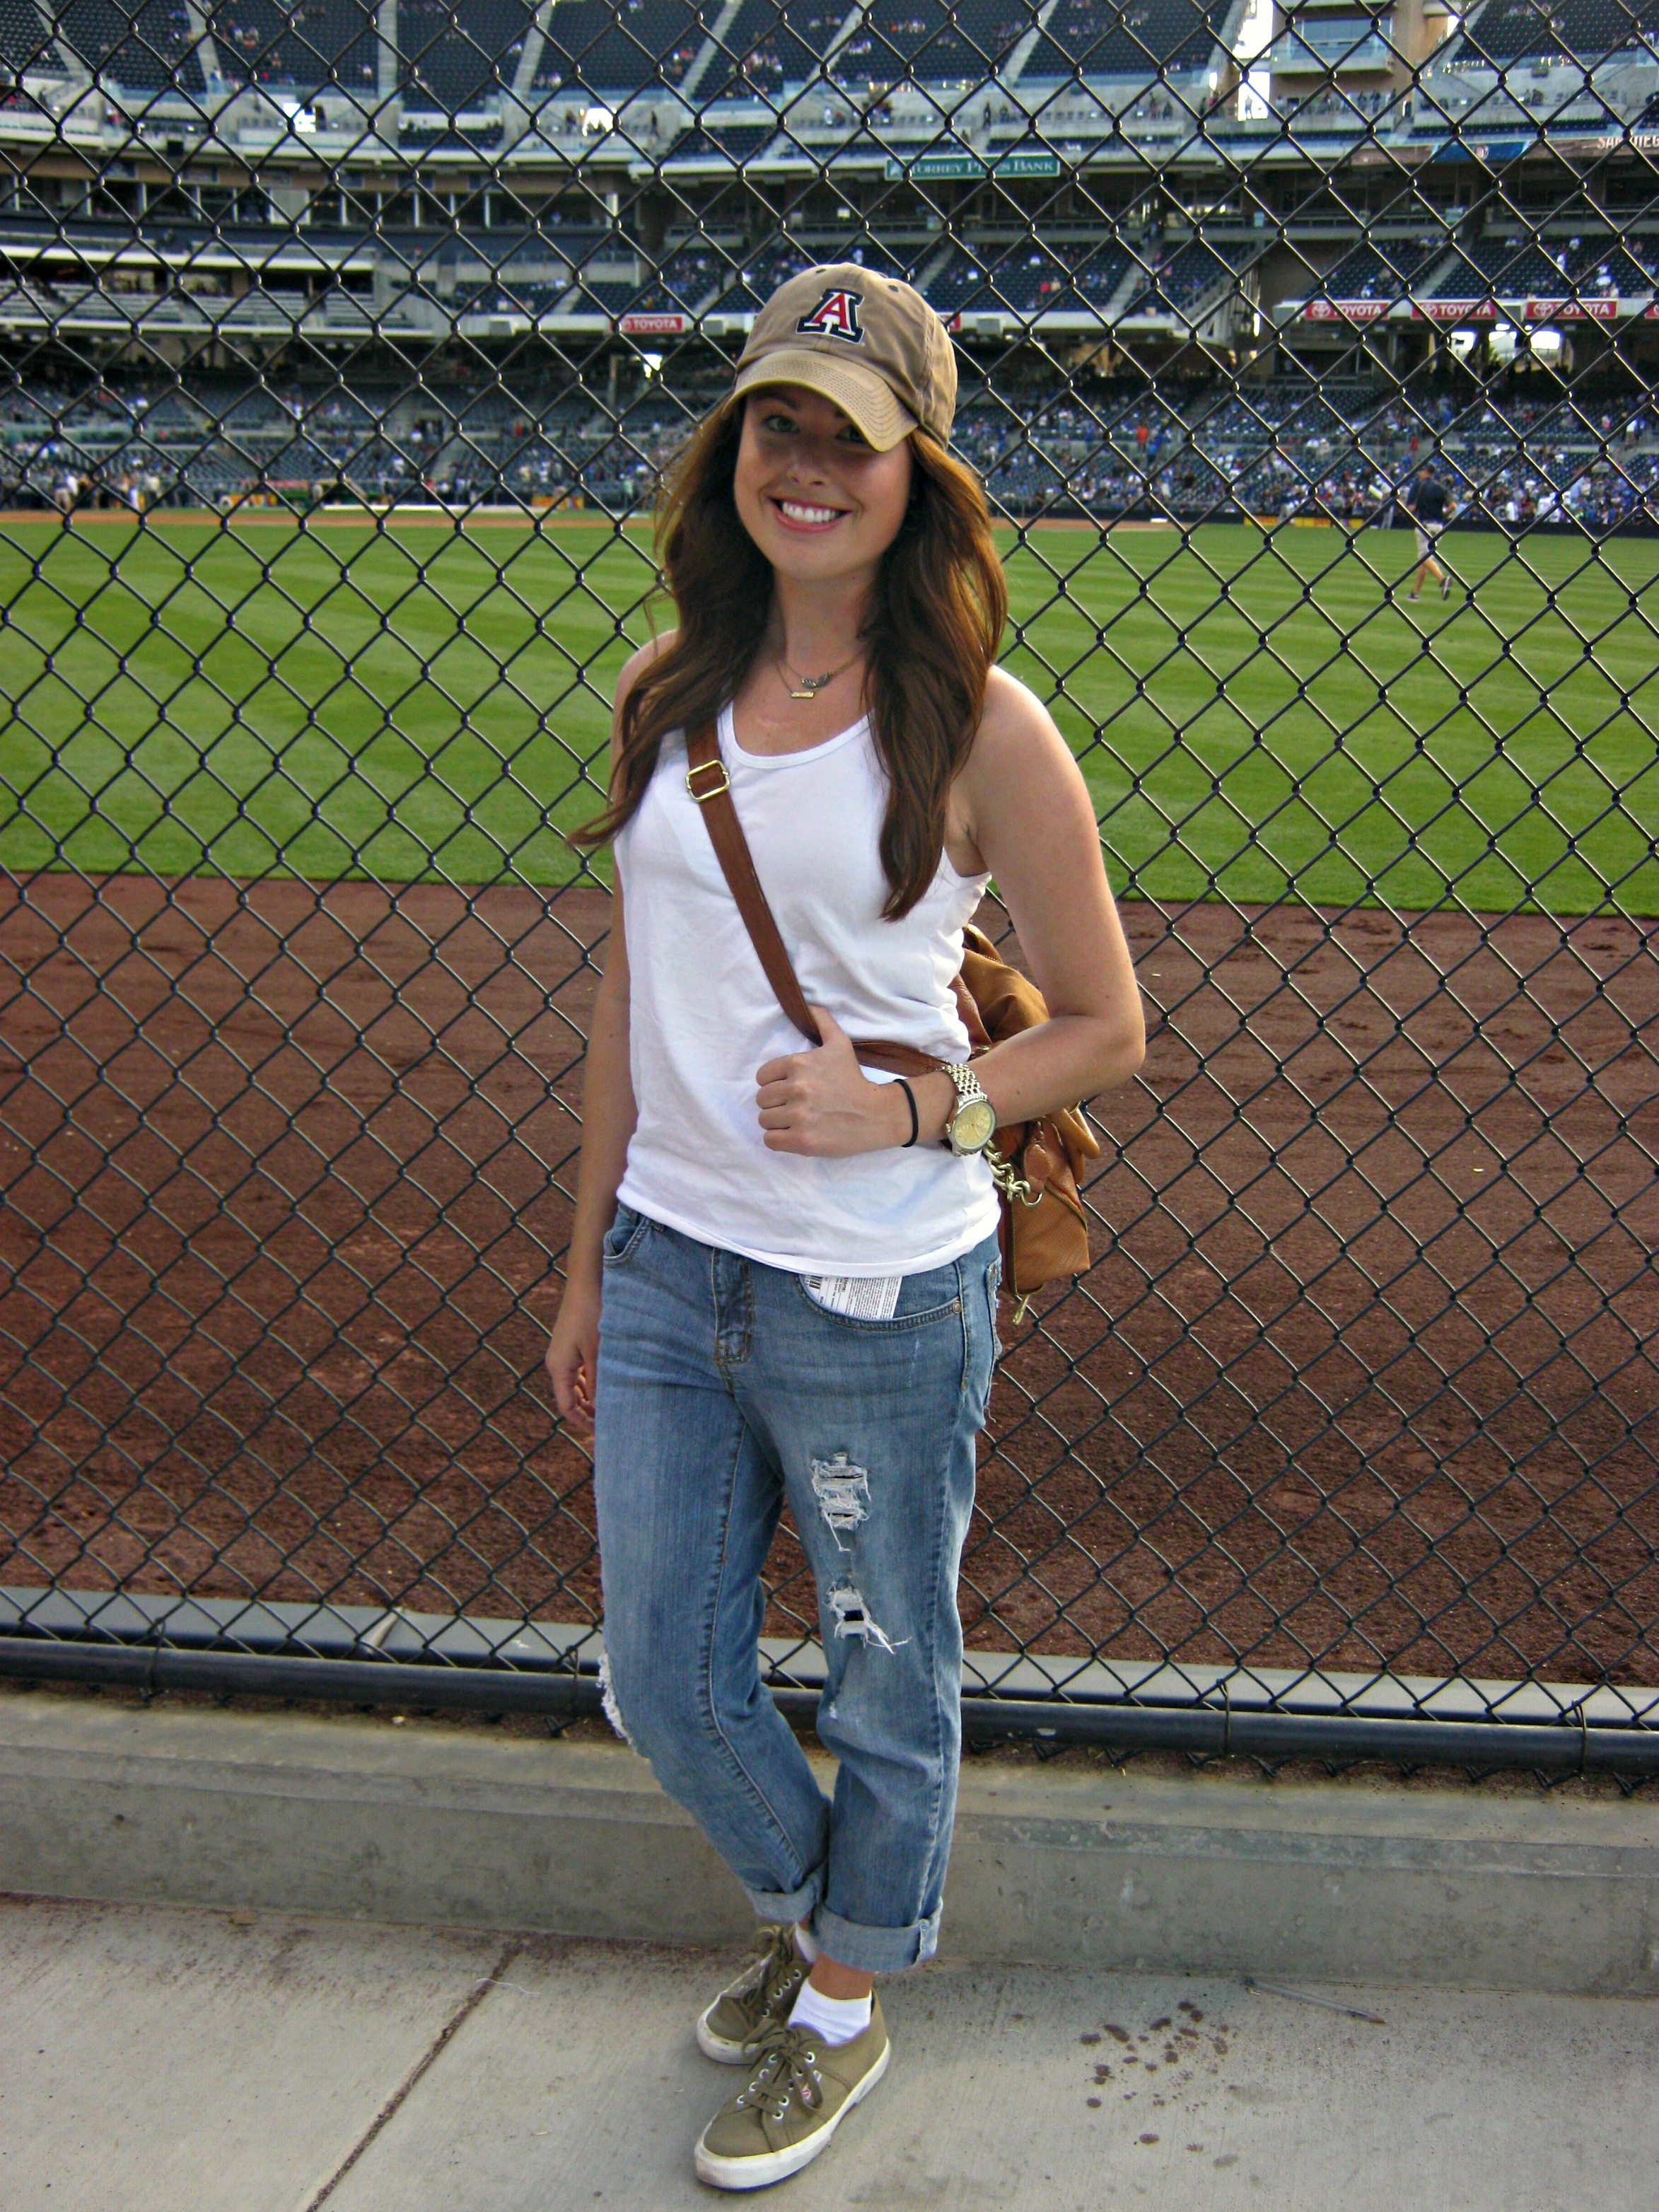 Take me out to the ball game | Abby Vancisin